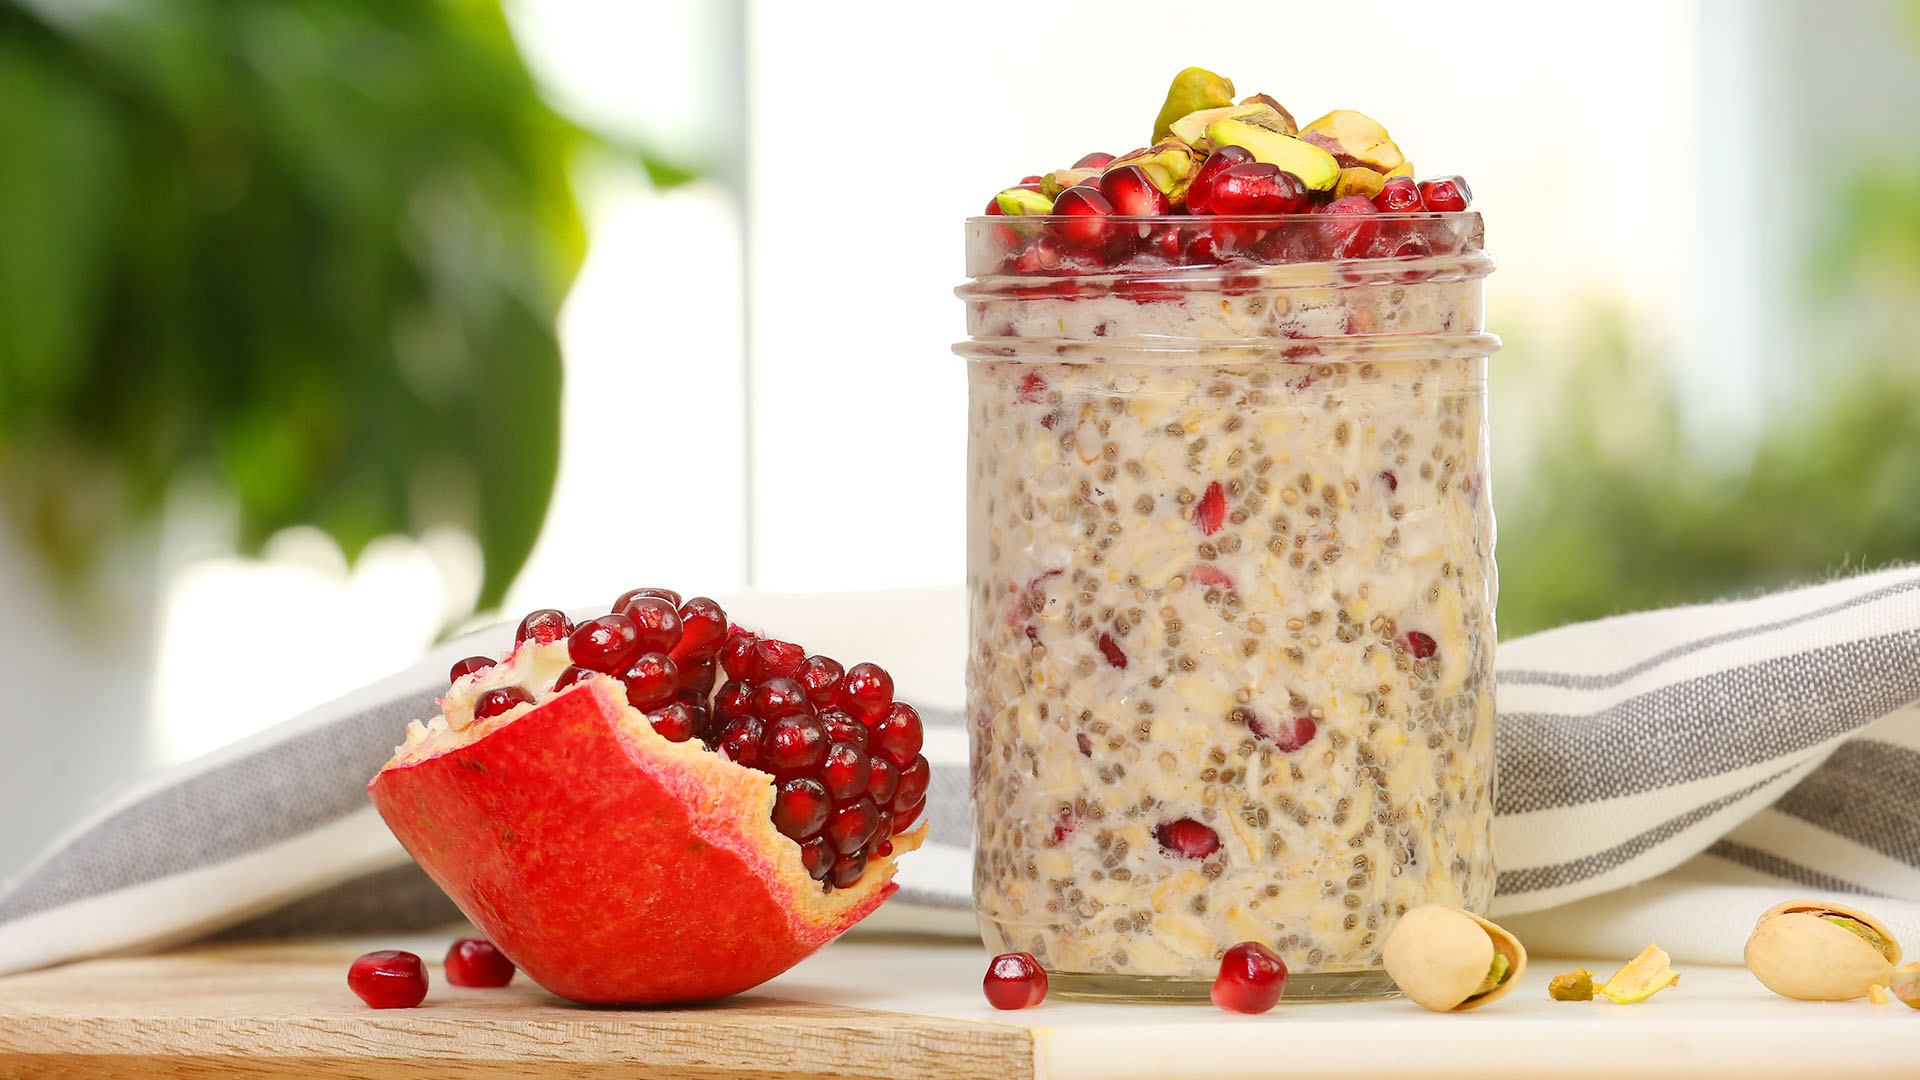 Pomegranate-Pistachio-Overnight-Oatmeal_16x9_The-Domestic-Geek